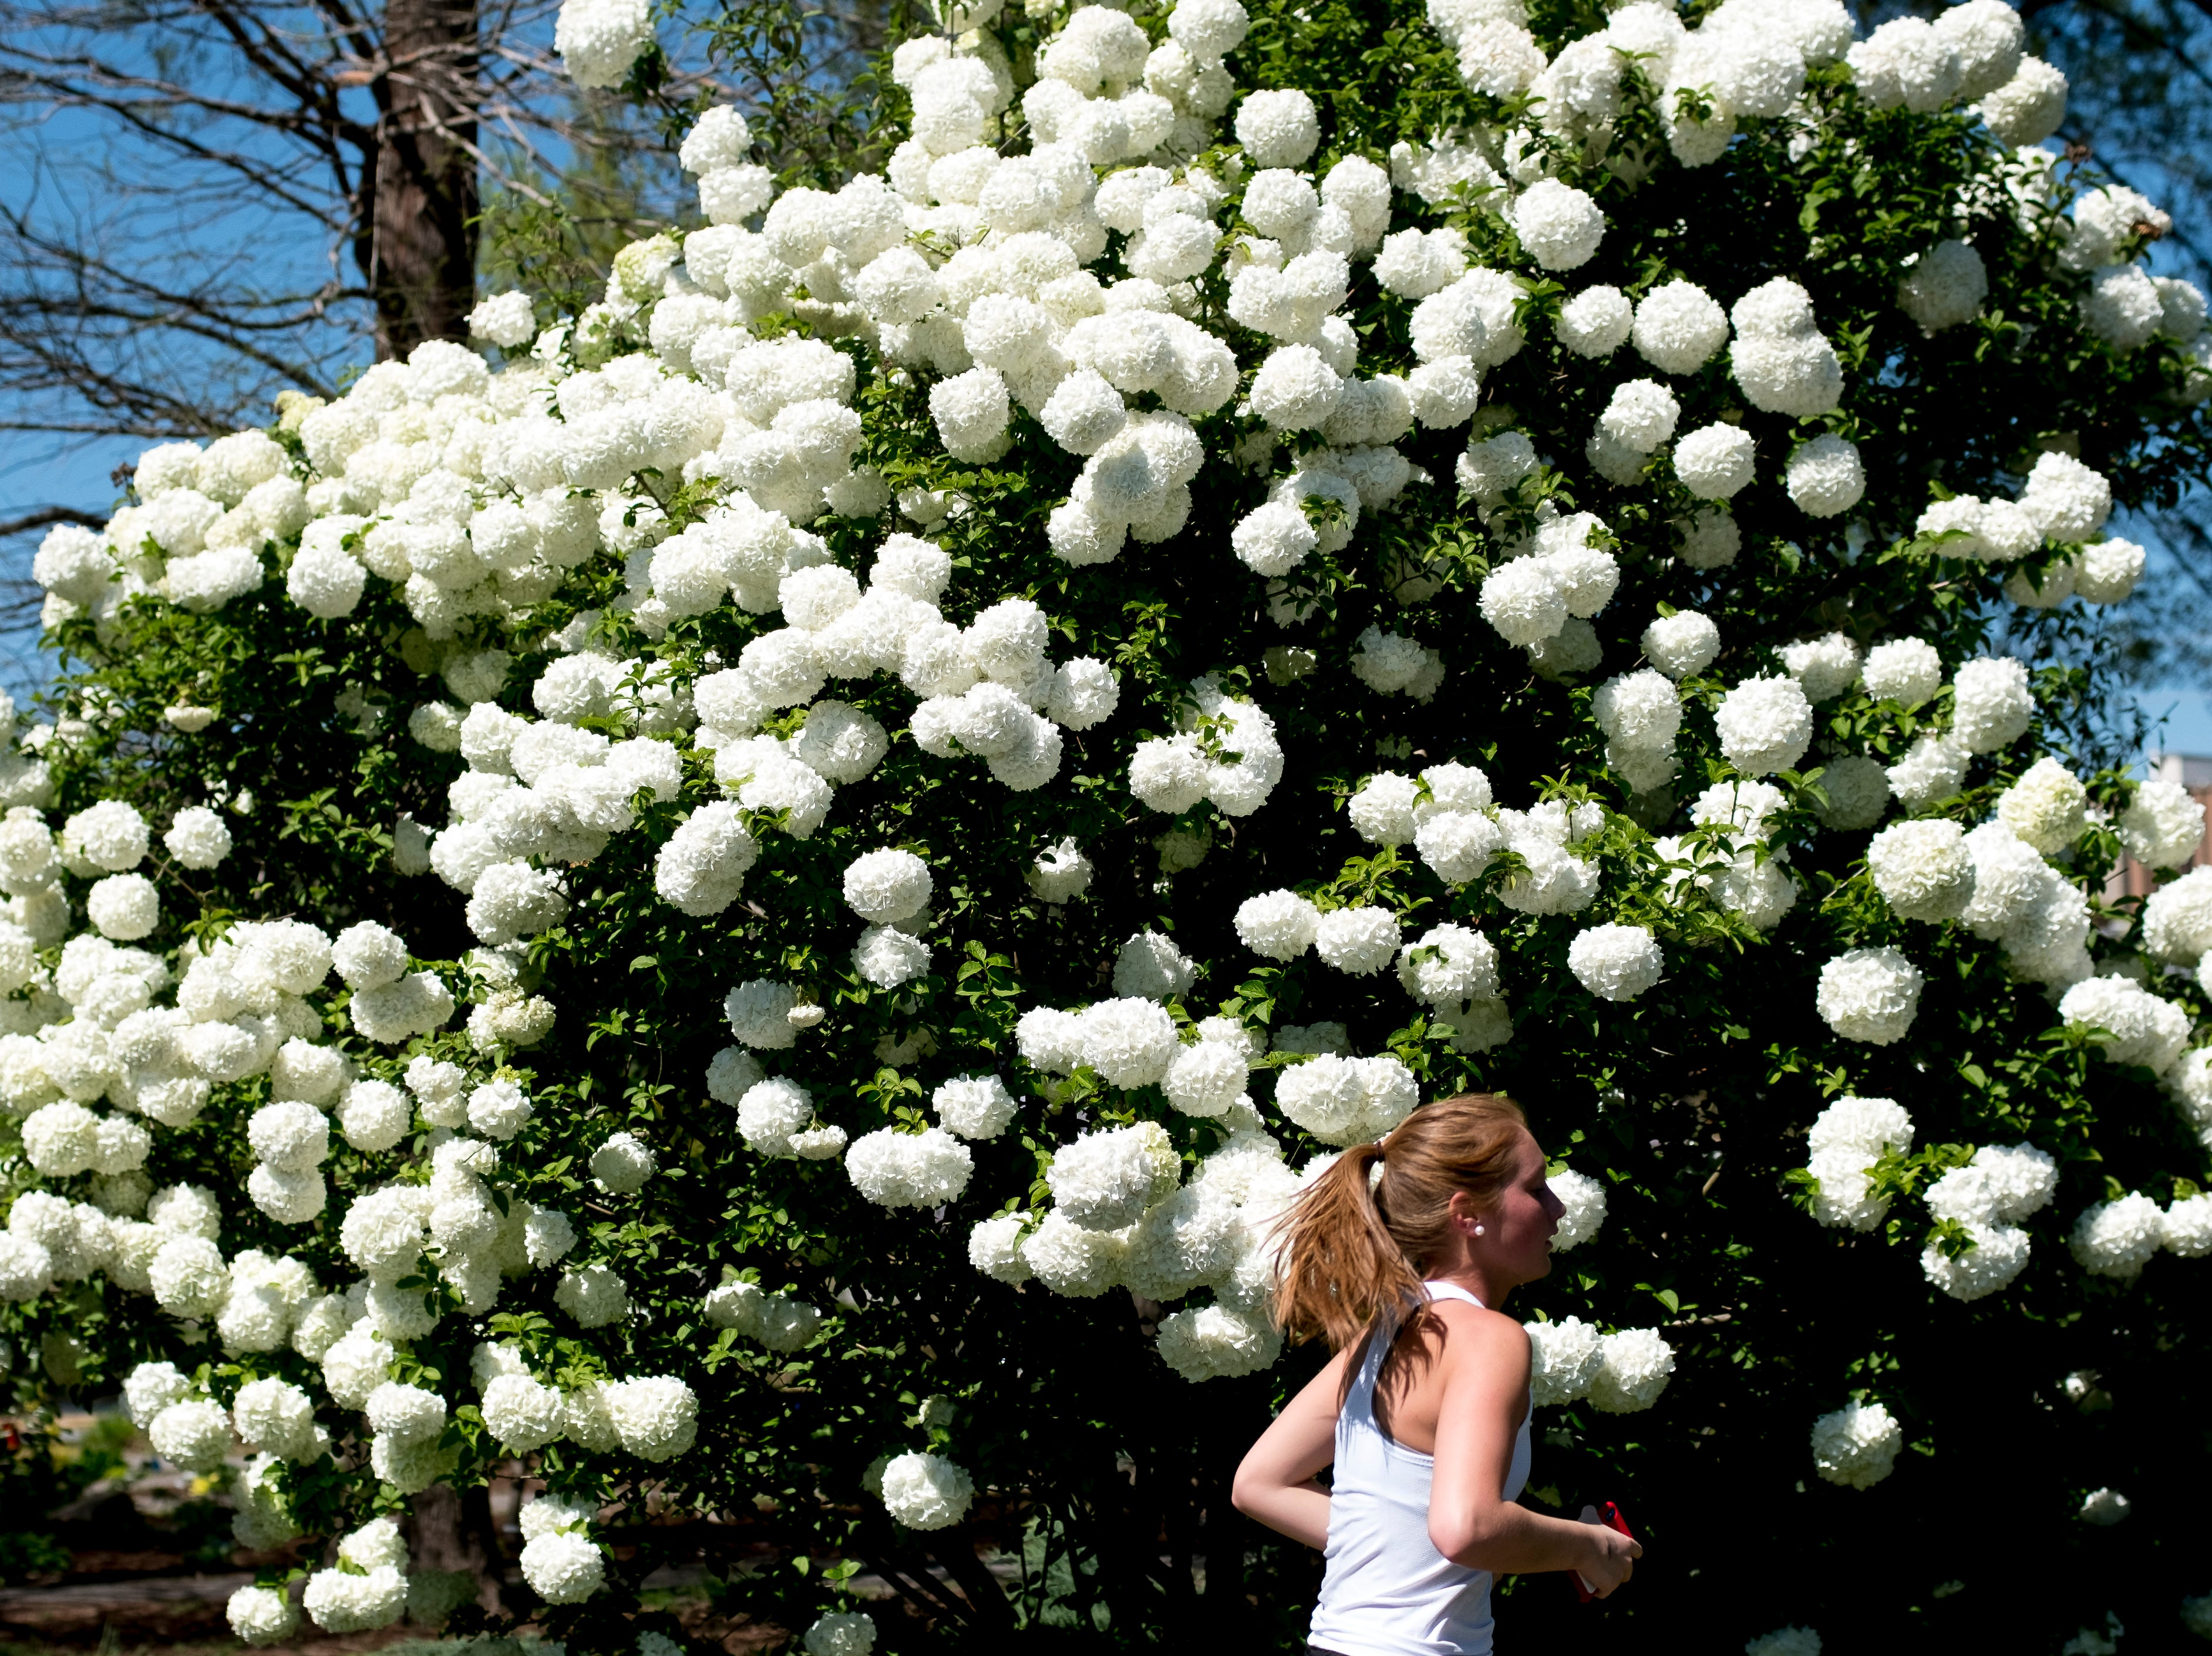 A jogger passes a Chinese snowball viburnum at the UT Botanical Gardens in Farragut, Tennessee on Wednesday, April 10, 2019.